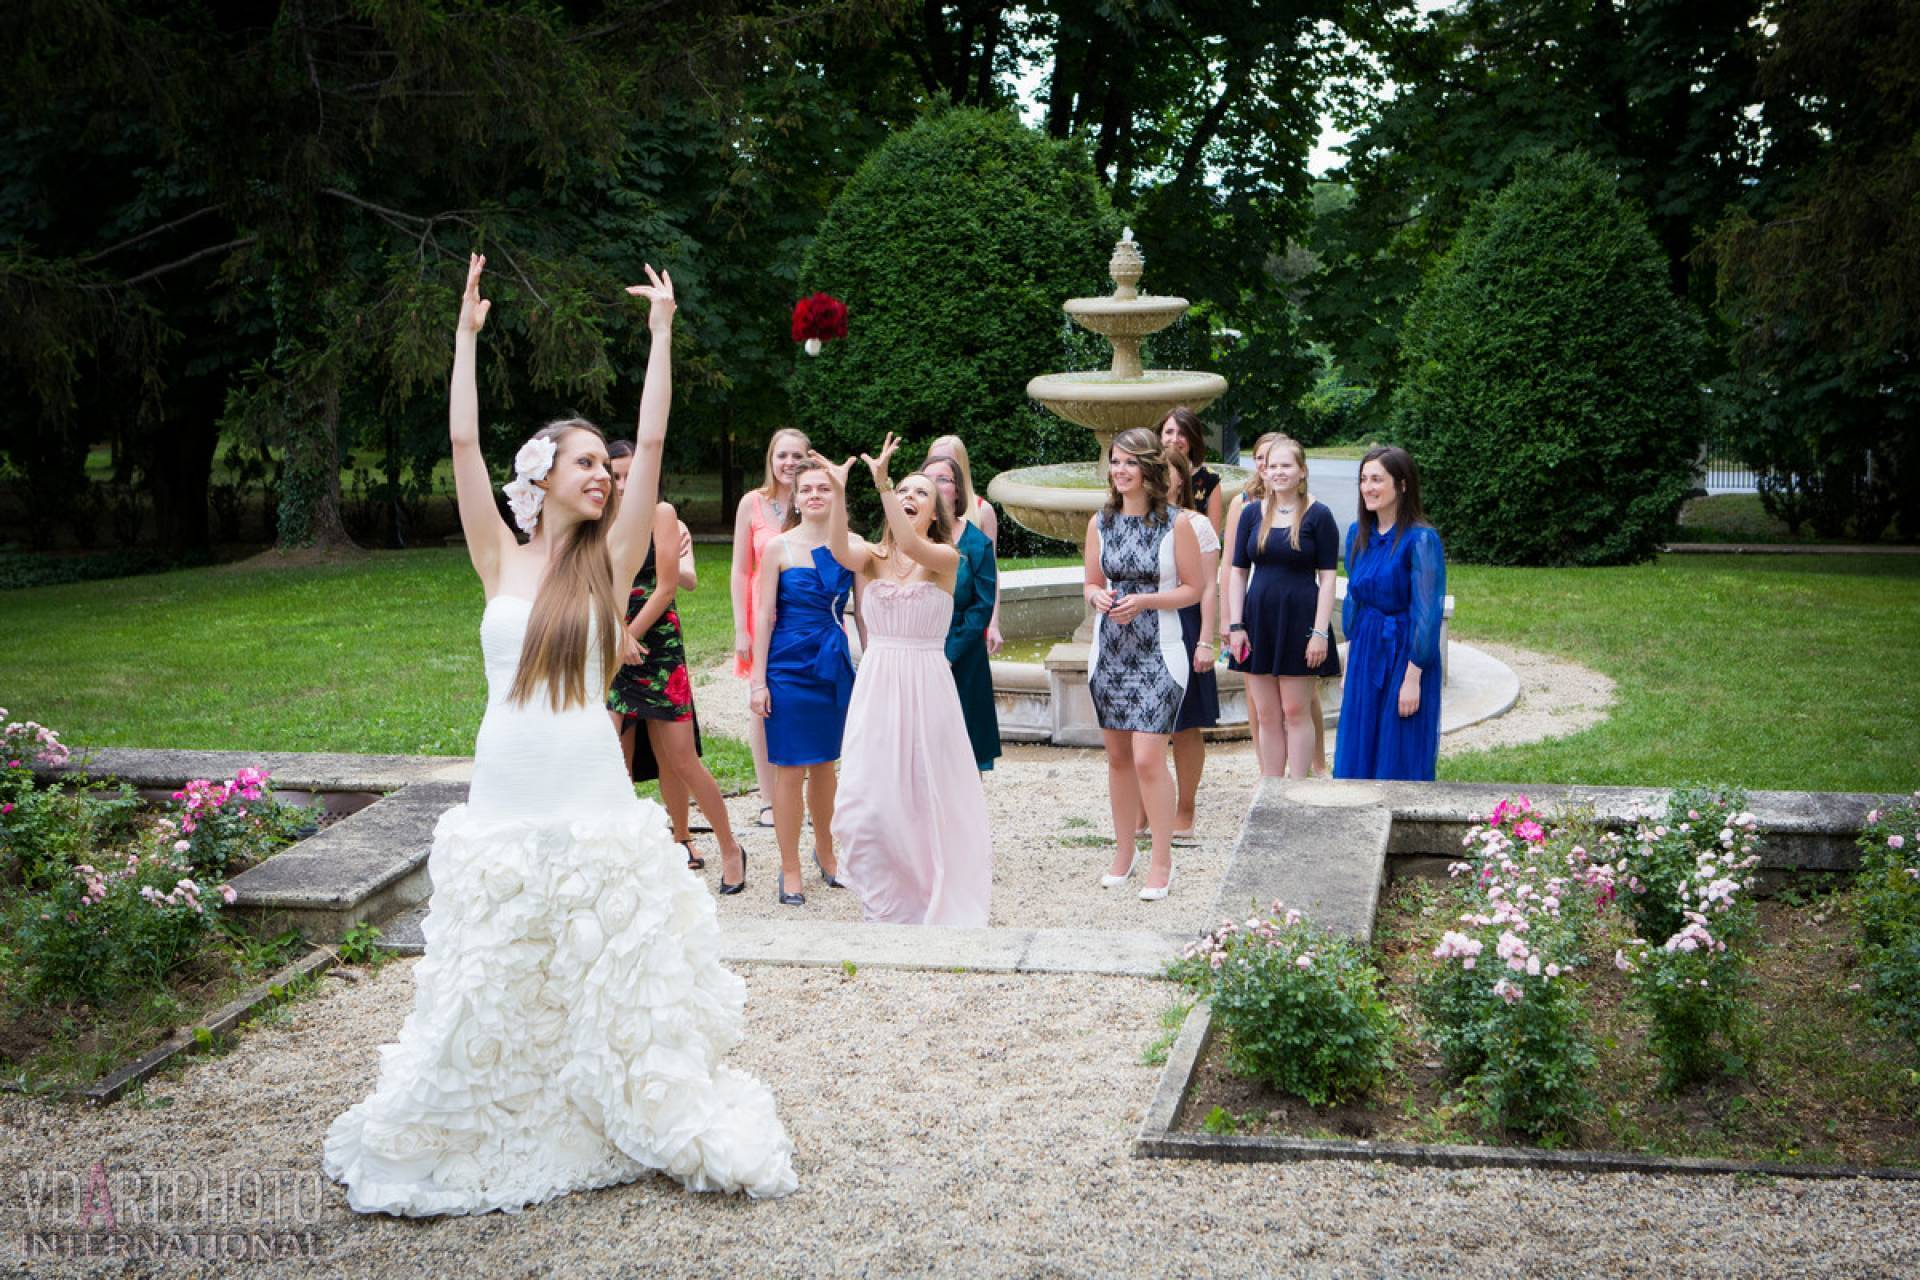 201509/Ingrid_Gunnar_wedding_031_jpg.jpg -